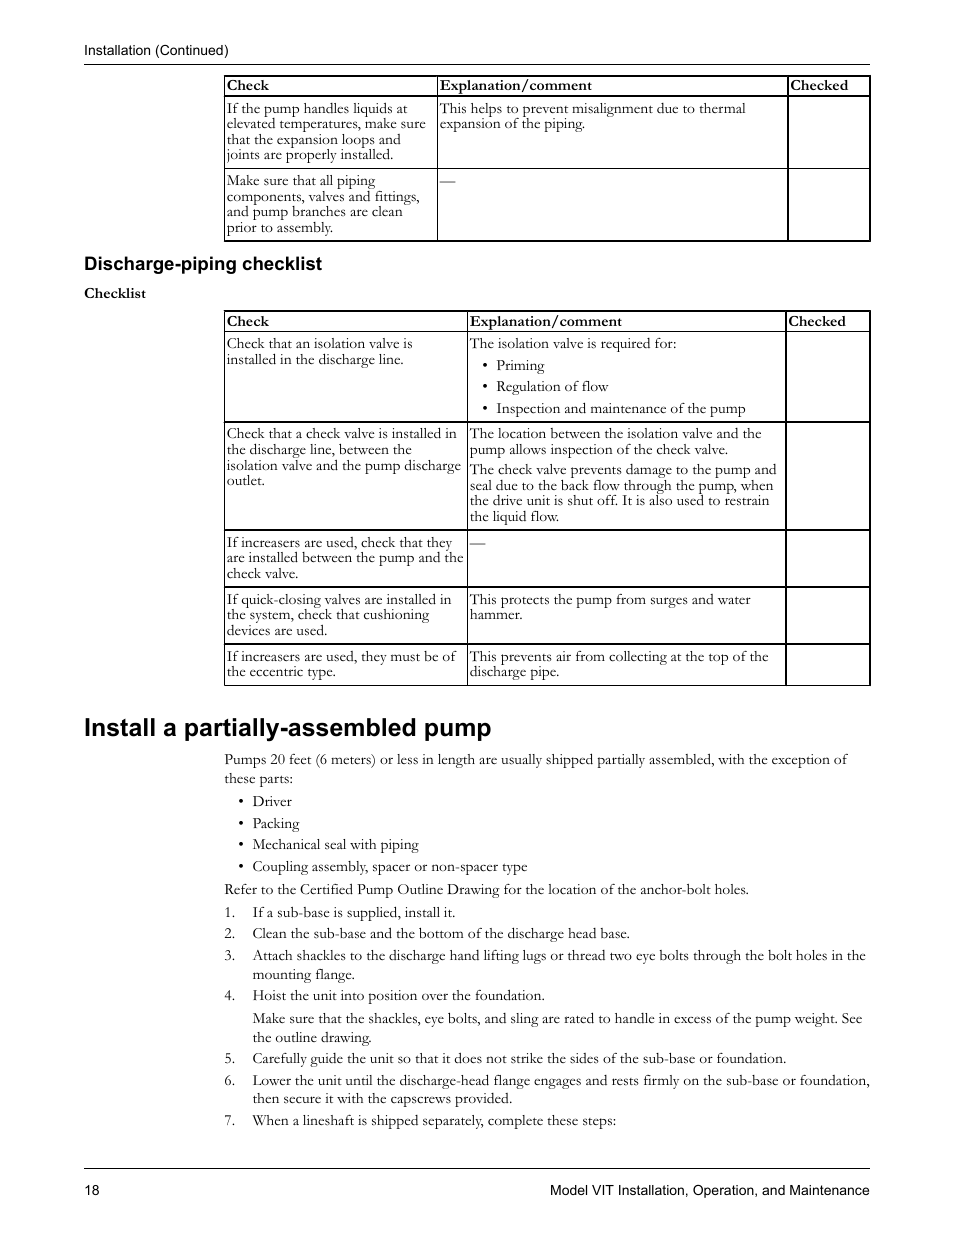 Discharge-piping checklist, Install a partially-assembled